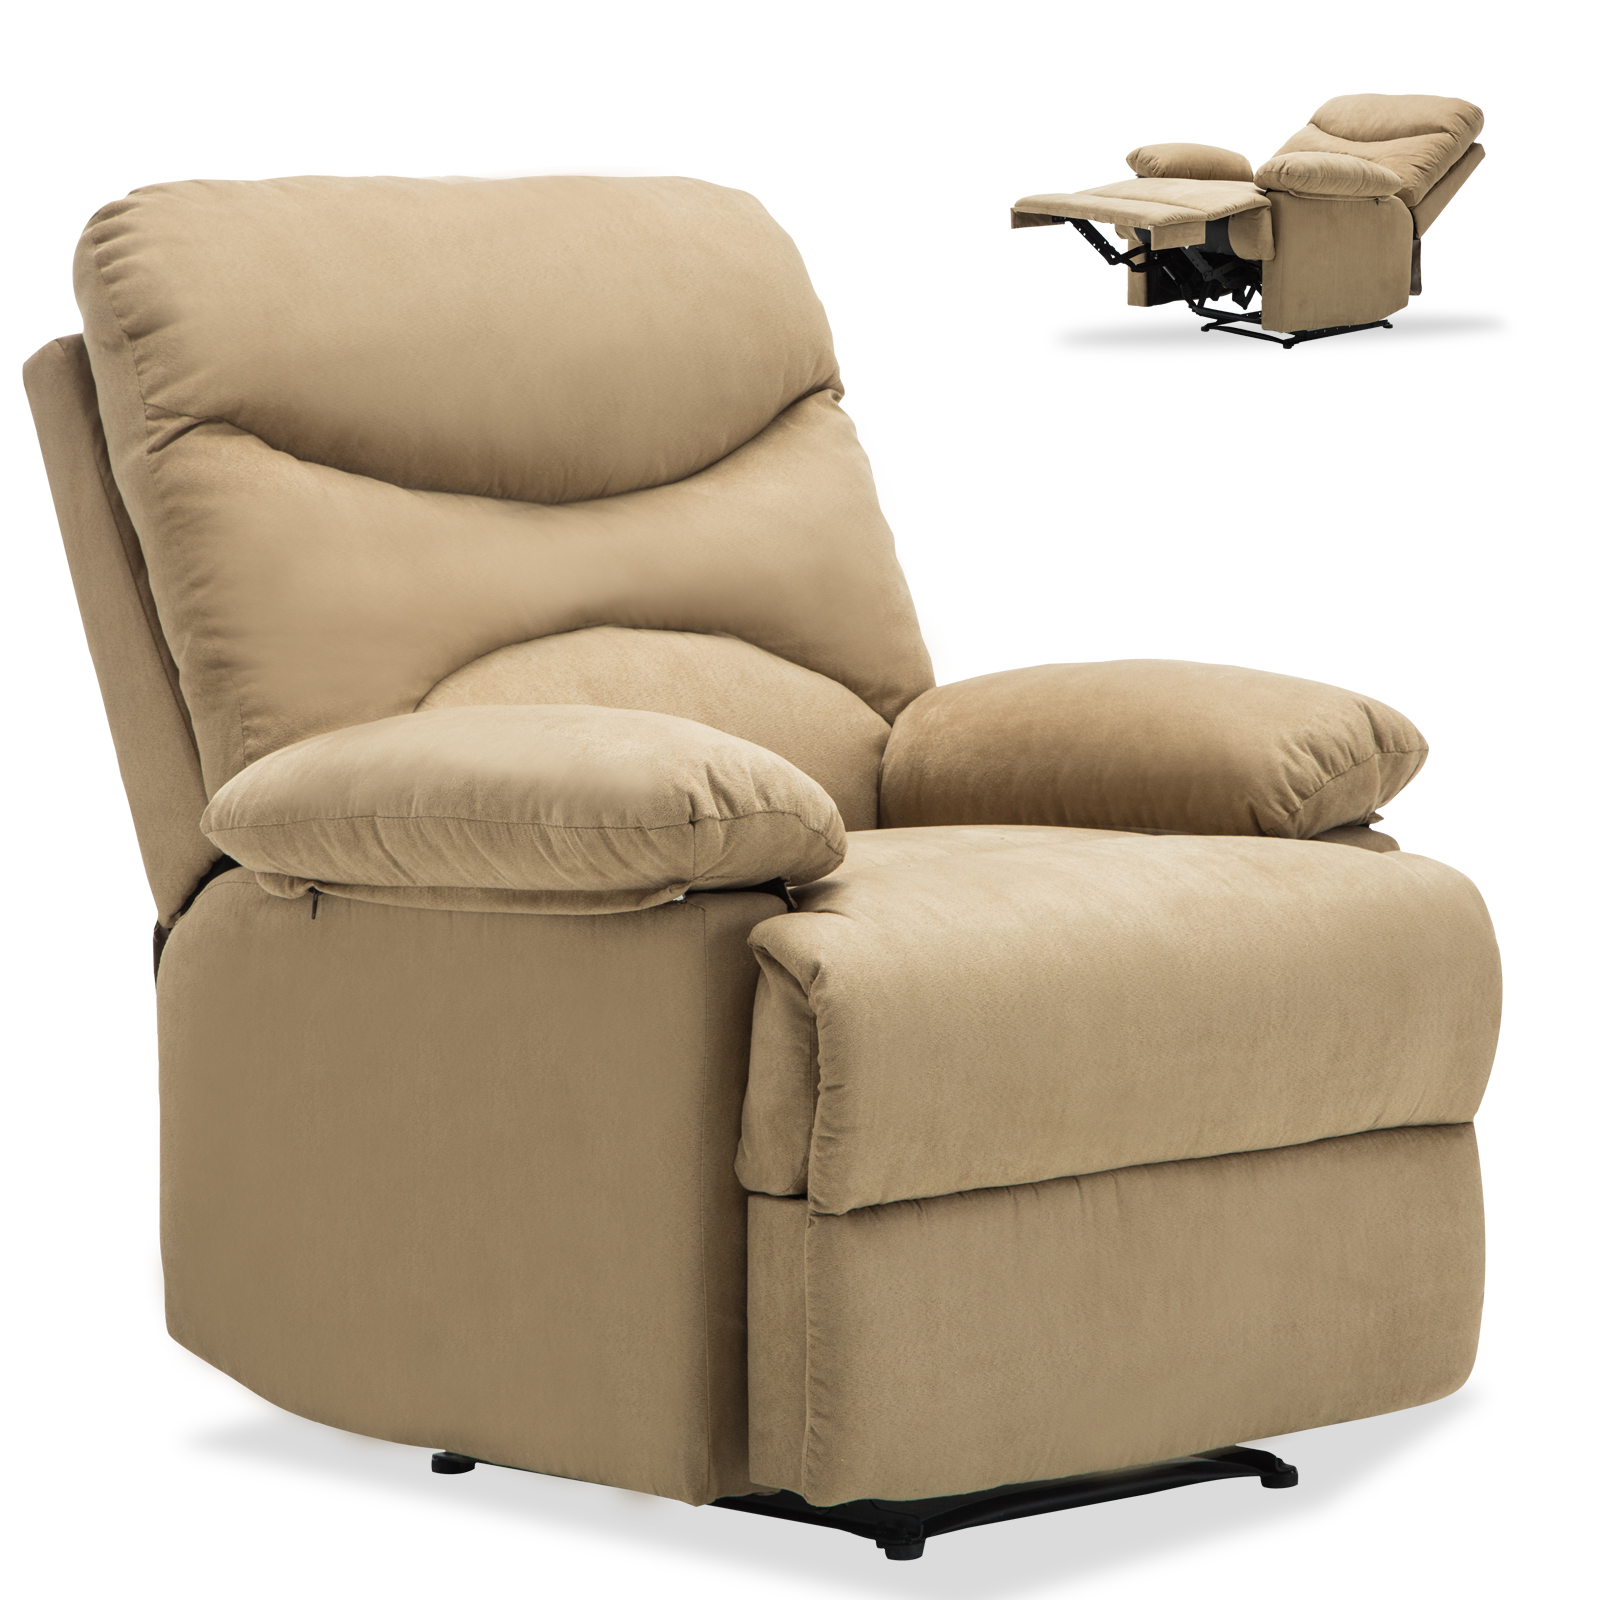 Ergonomic Massage Recliner Sofa Chair Microfiber Lounge Heated W Control